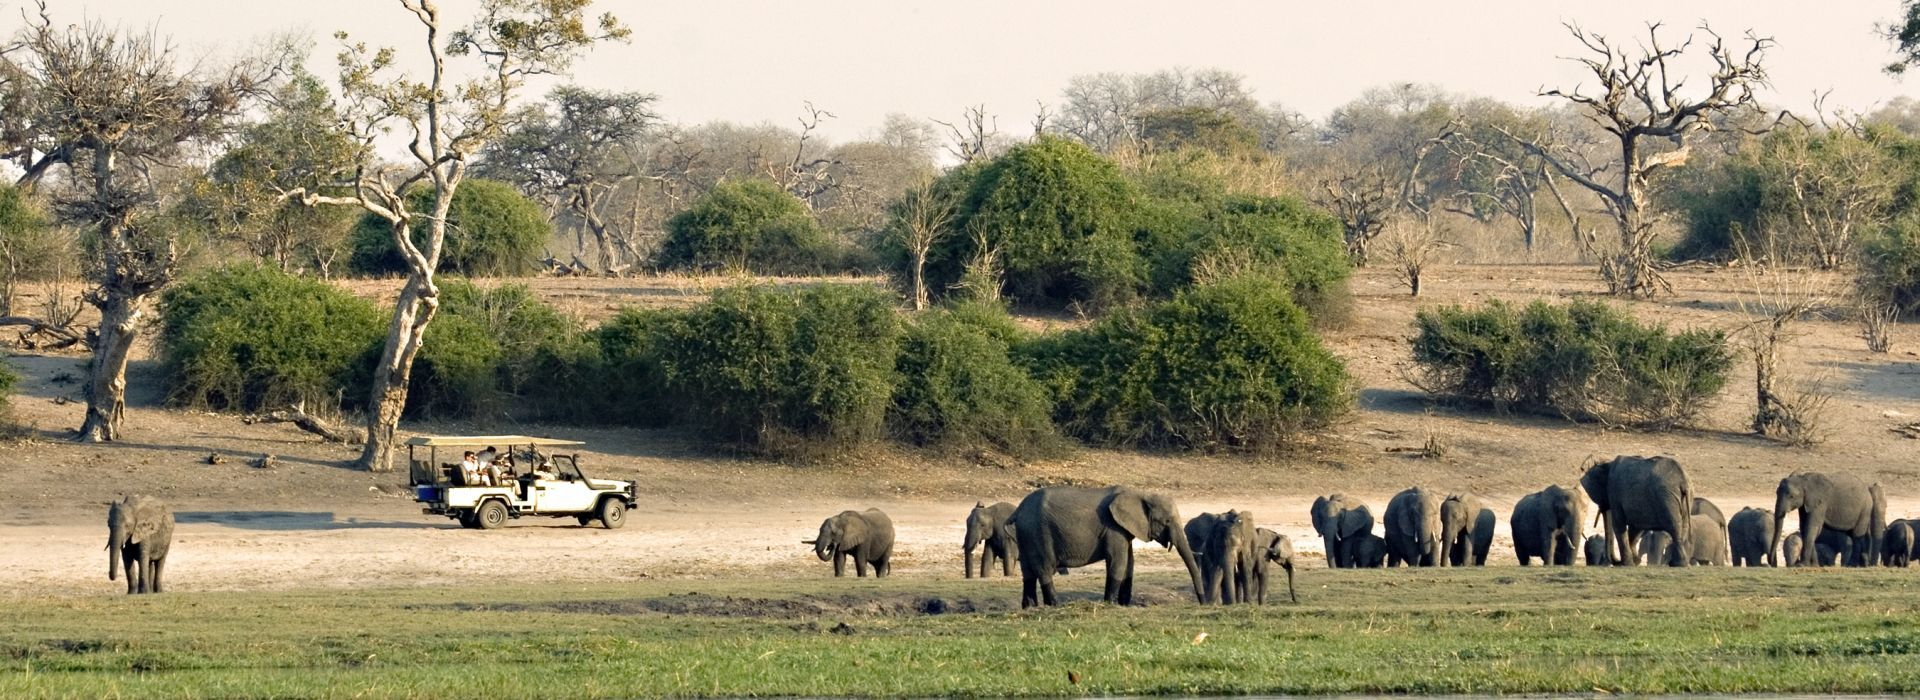 Self-drive or vehicle rental Tours in Botswana